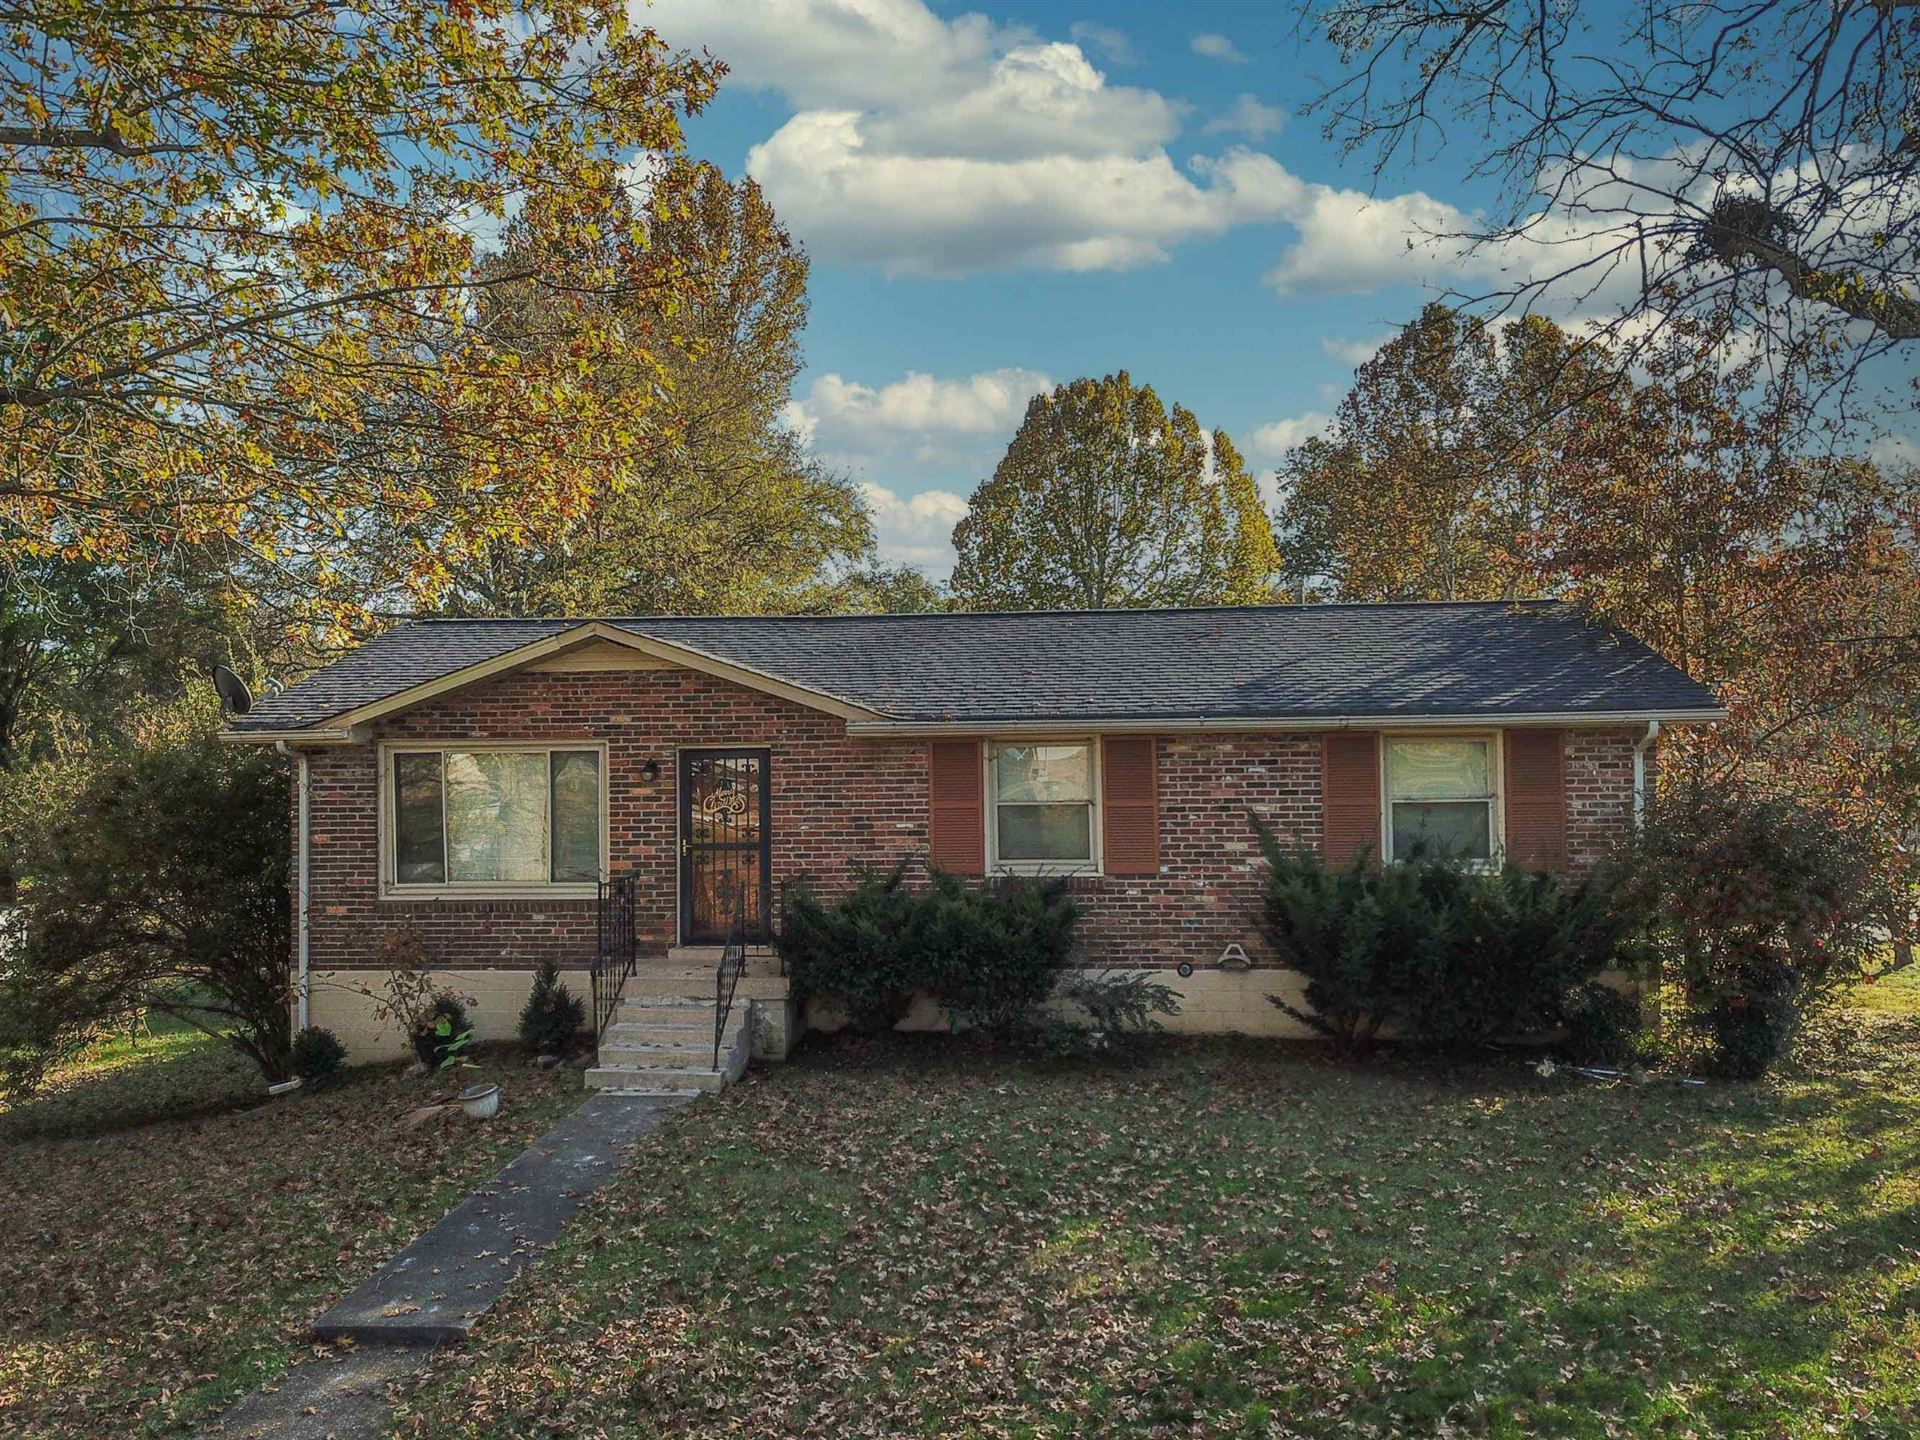 238 Lakeside Park Dr, Hendersonville, TN 37075 - MLS#: 2197497